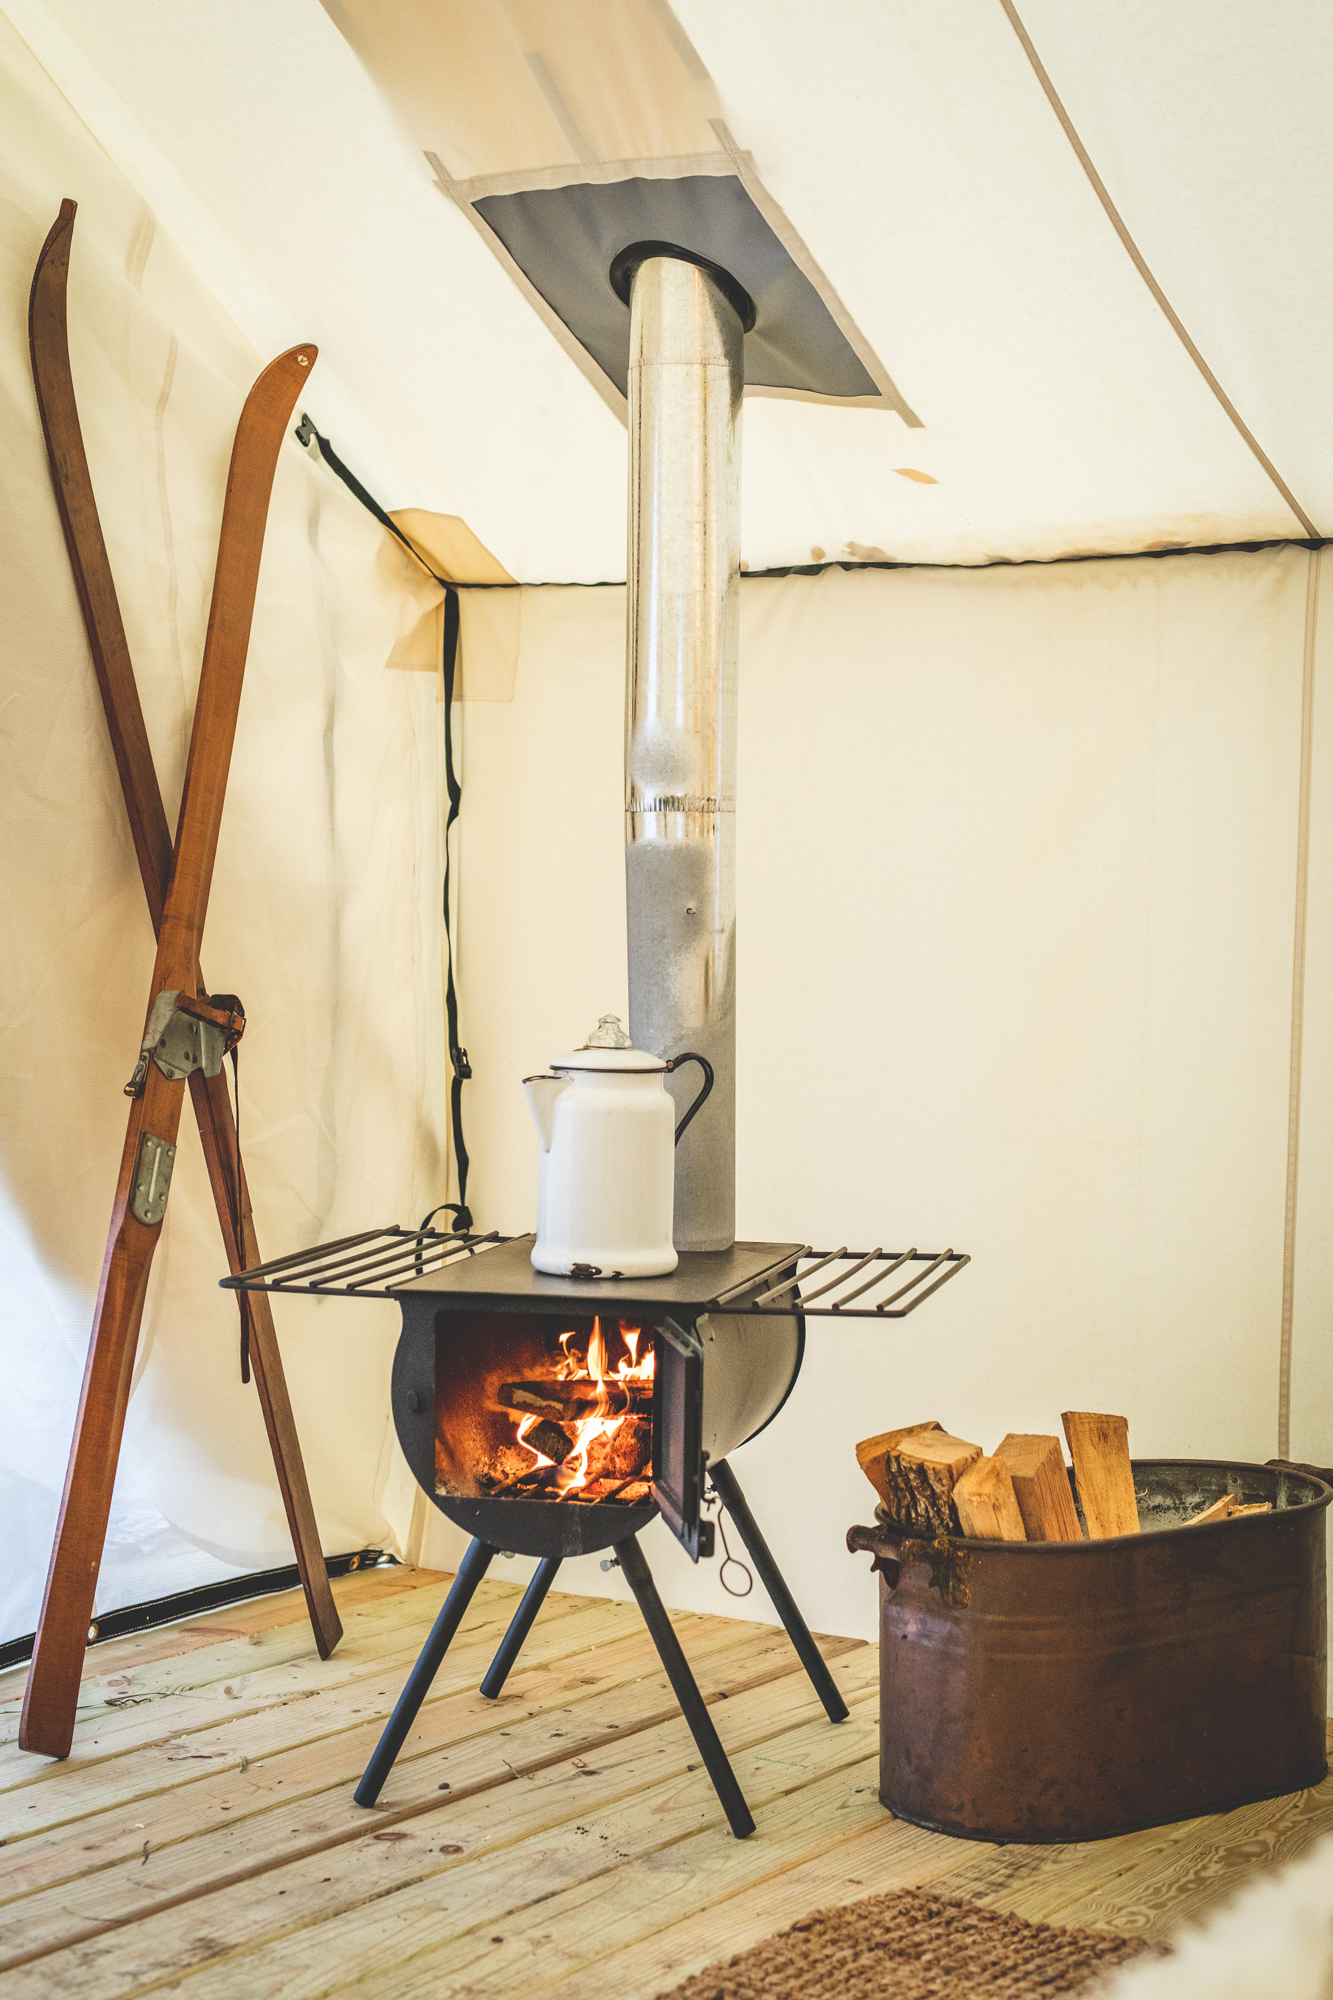 ski-lounge-wood-stove.jpg